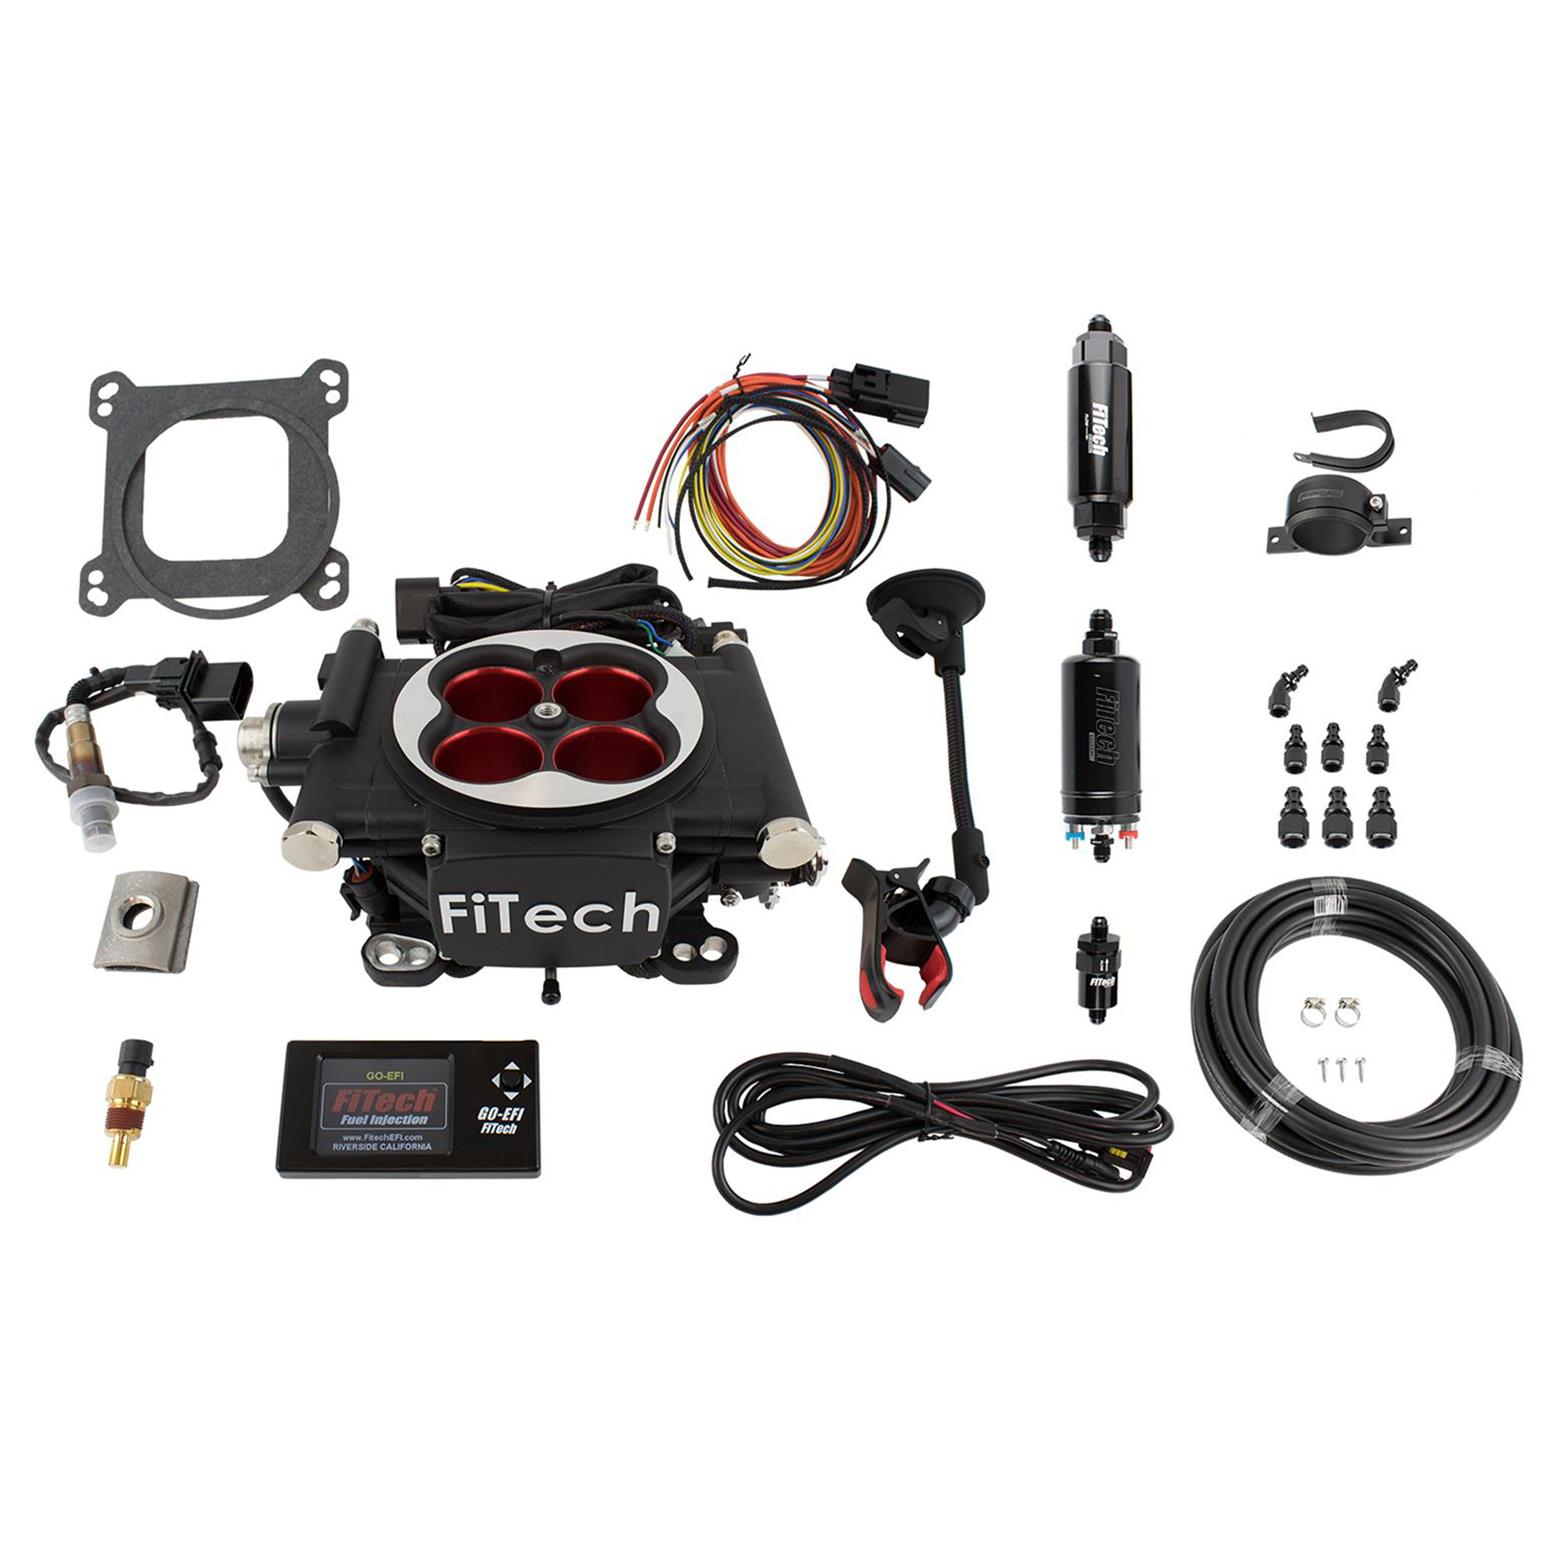 FiTech Go EFI 4 Power Adder 600 HP Self-Tuning Fuel Injection Systems 31004